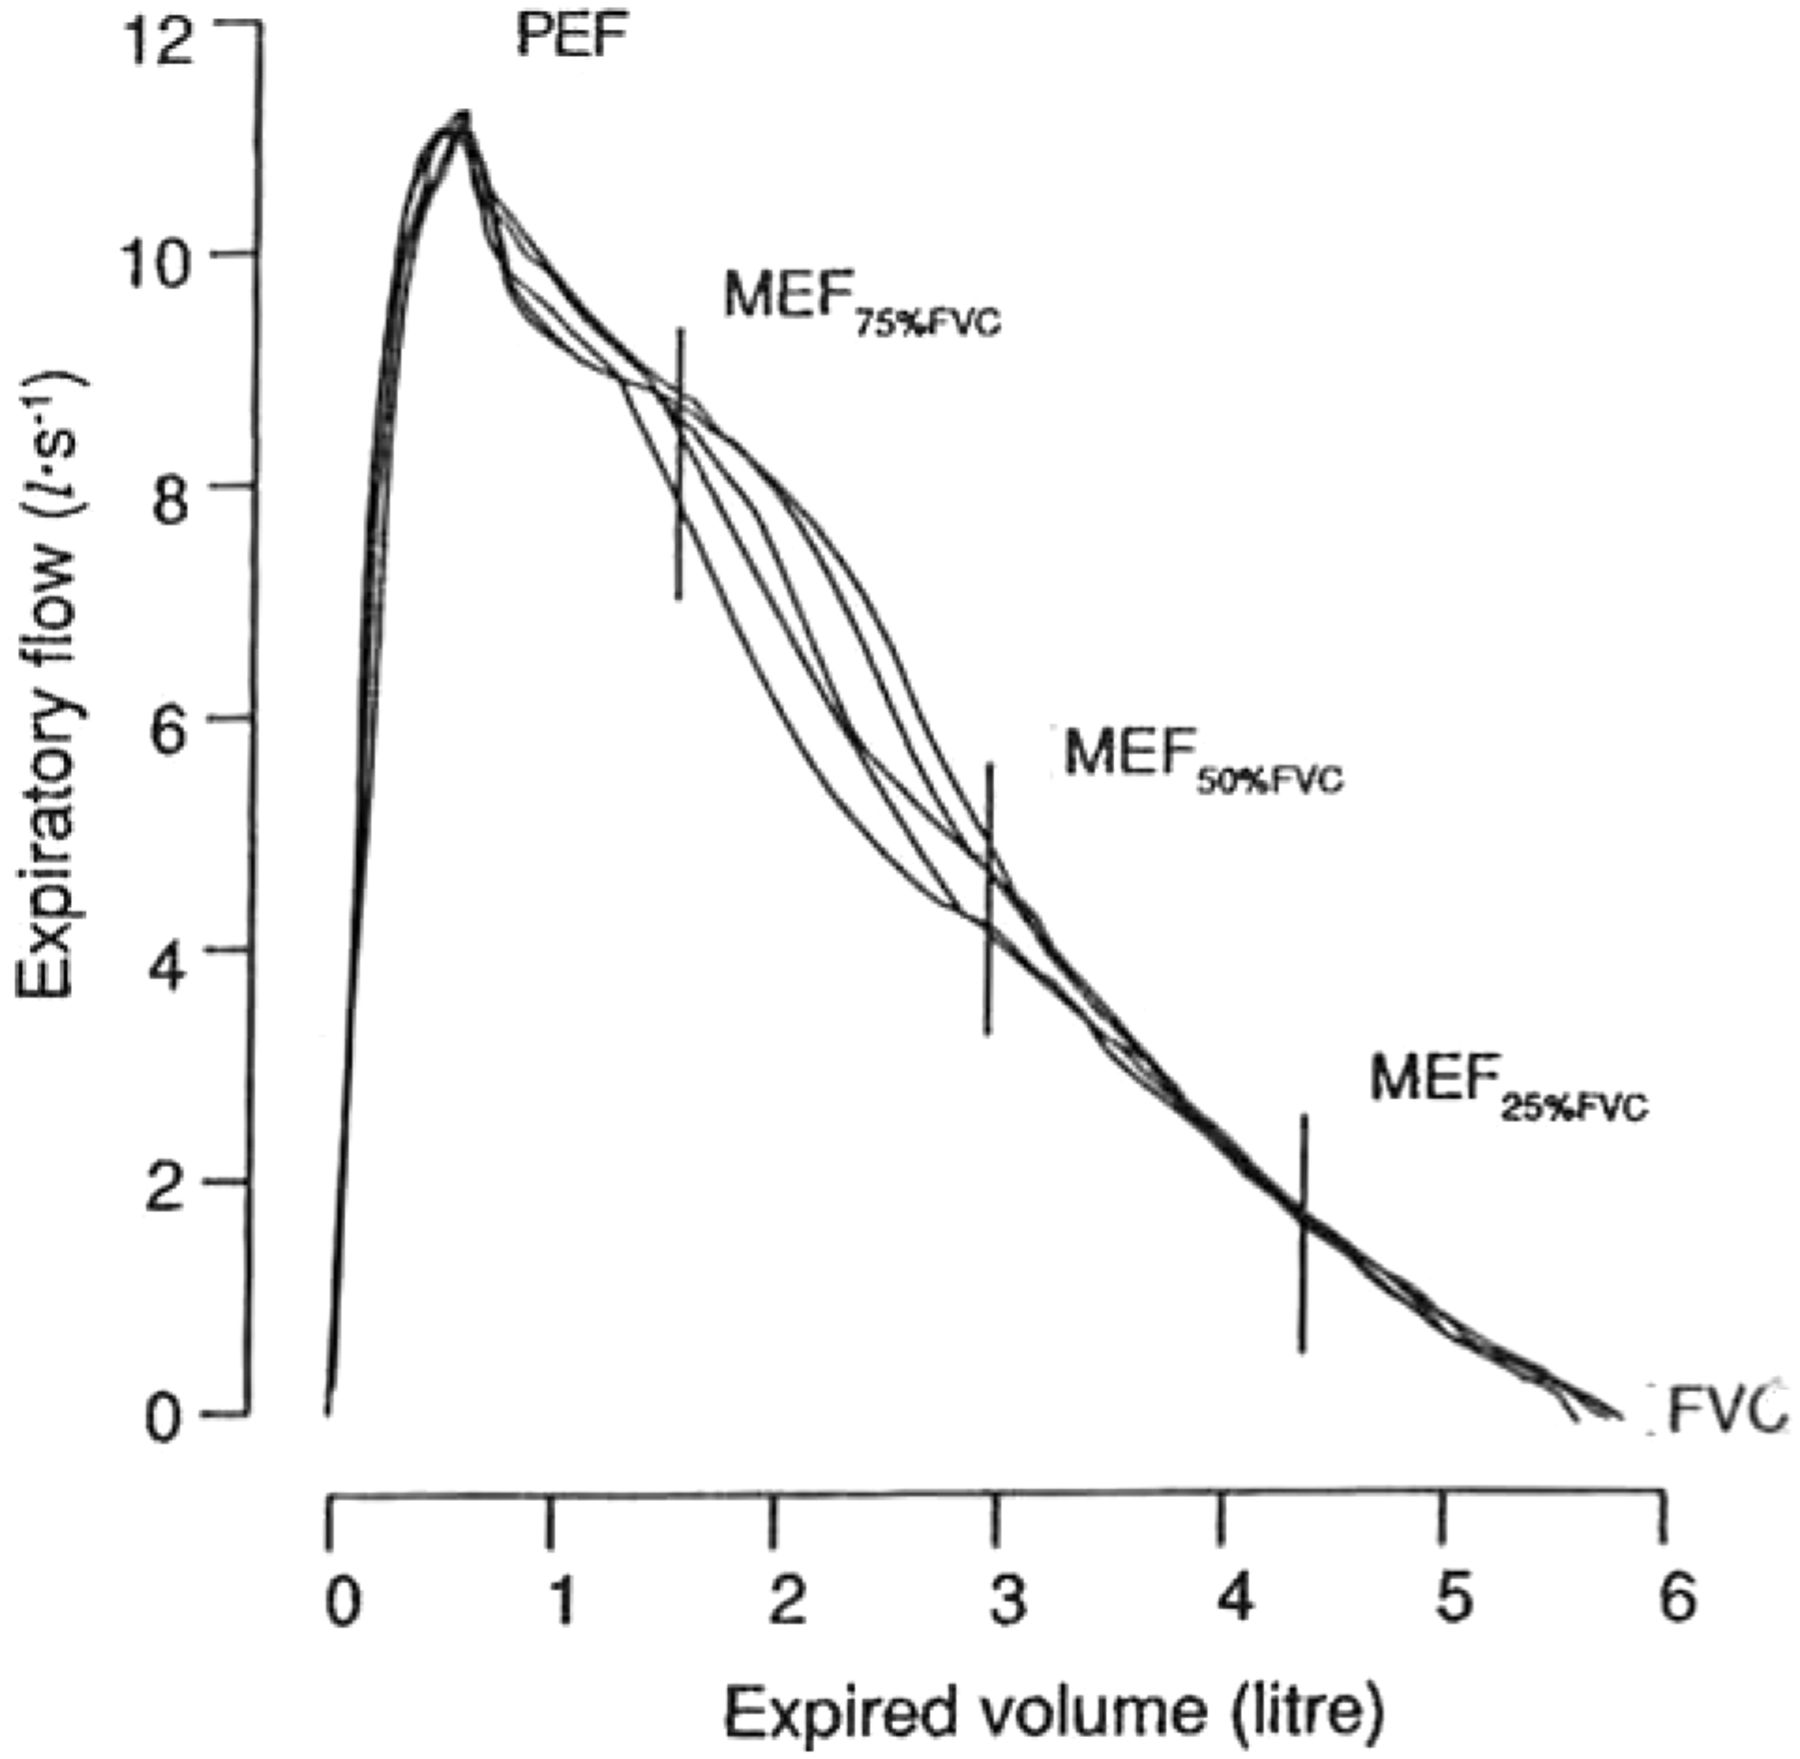 Lung volumes and forced ventilatory flows european respiratory download figure nvjuhfo Choice Image